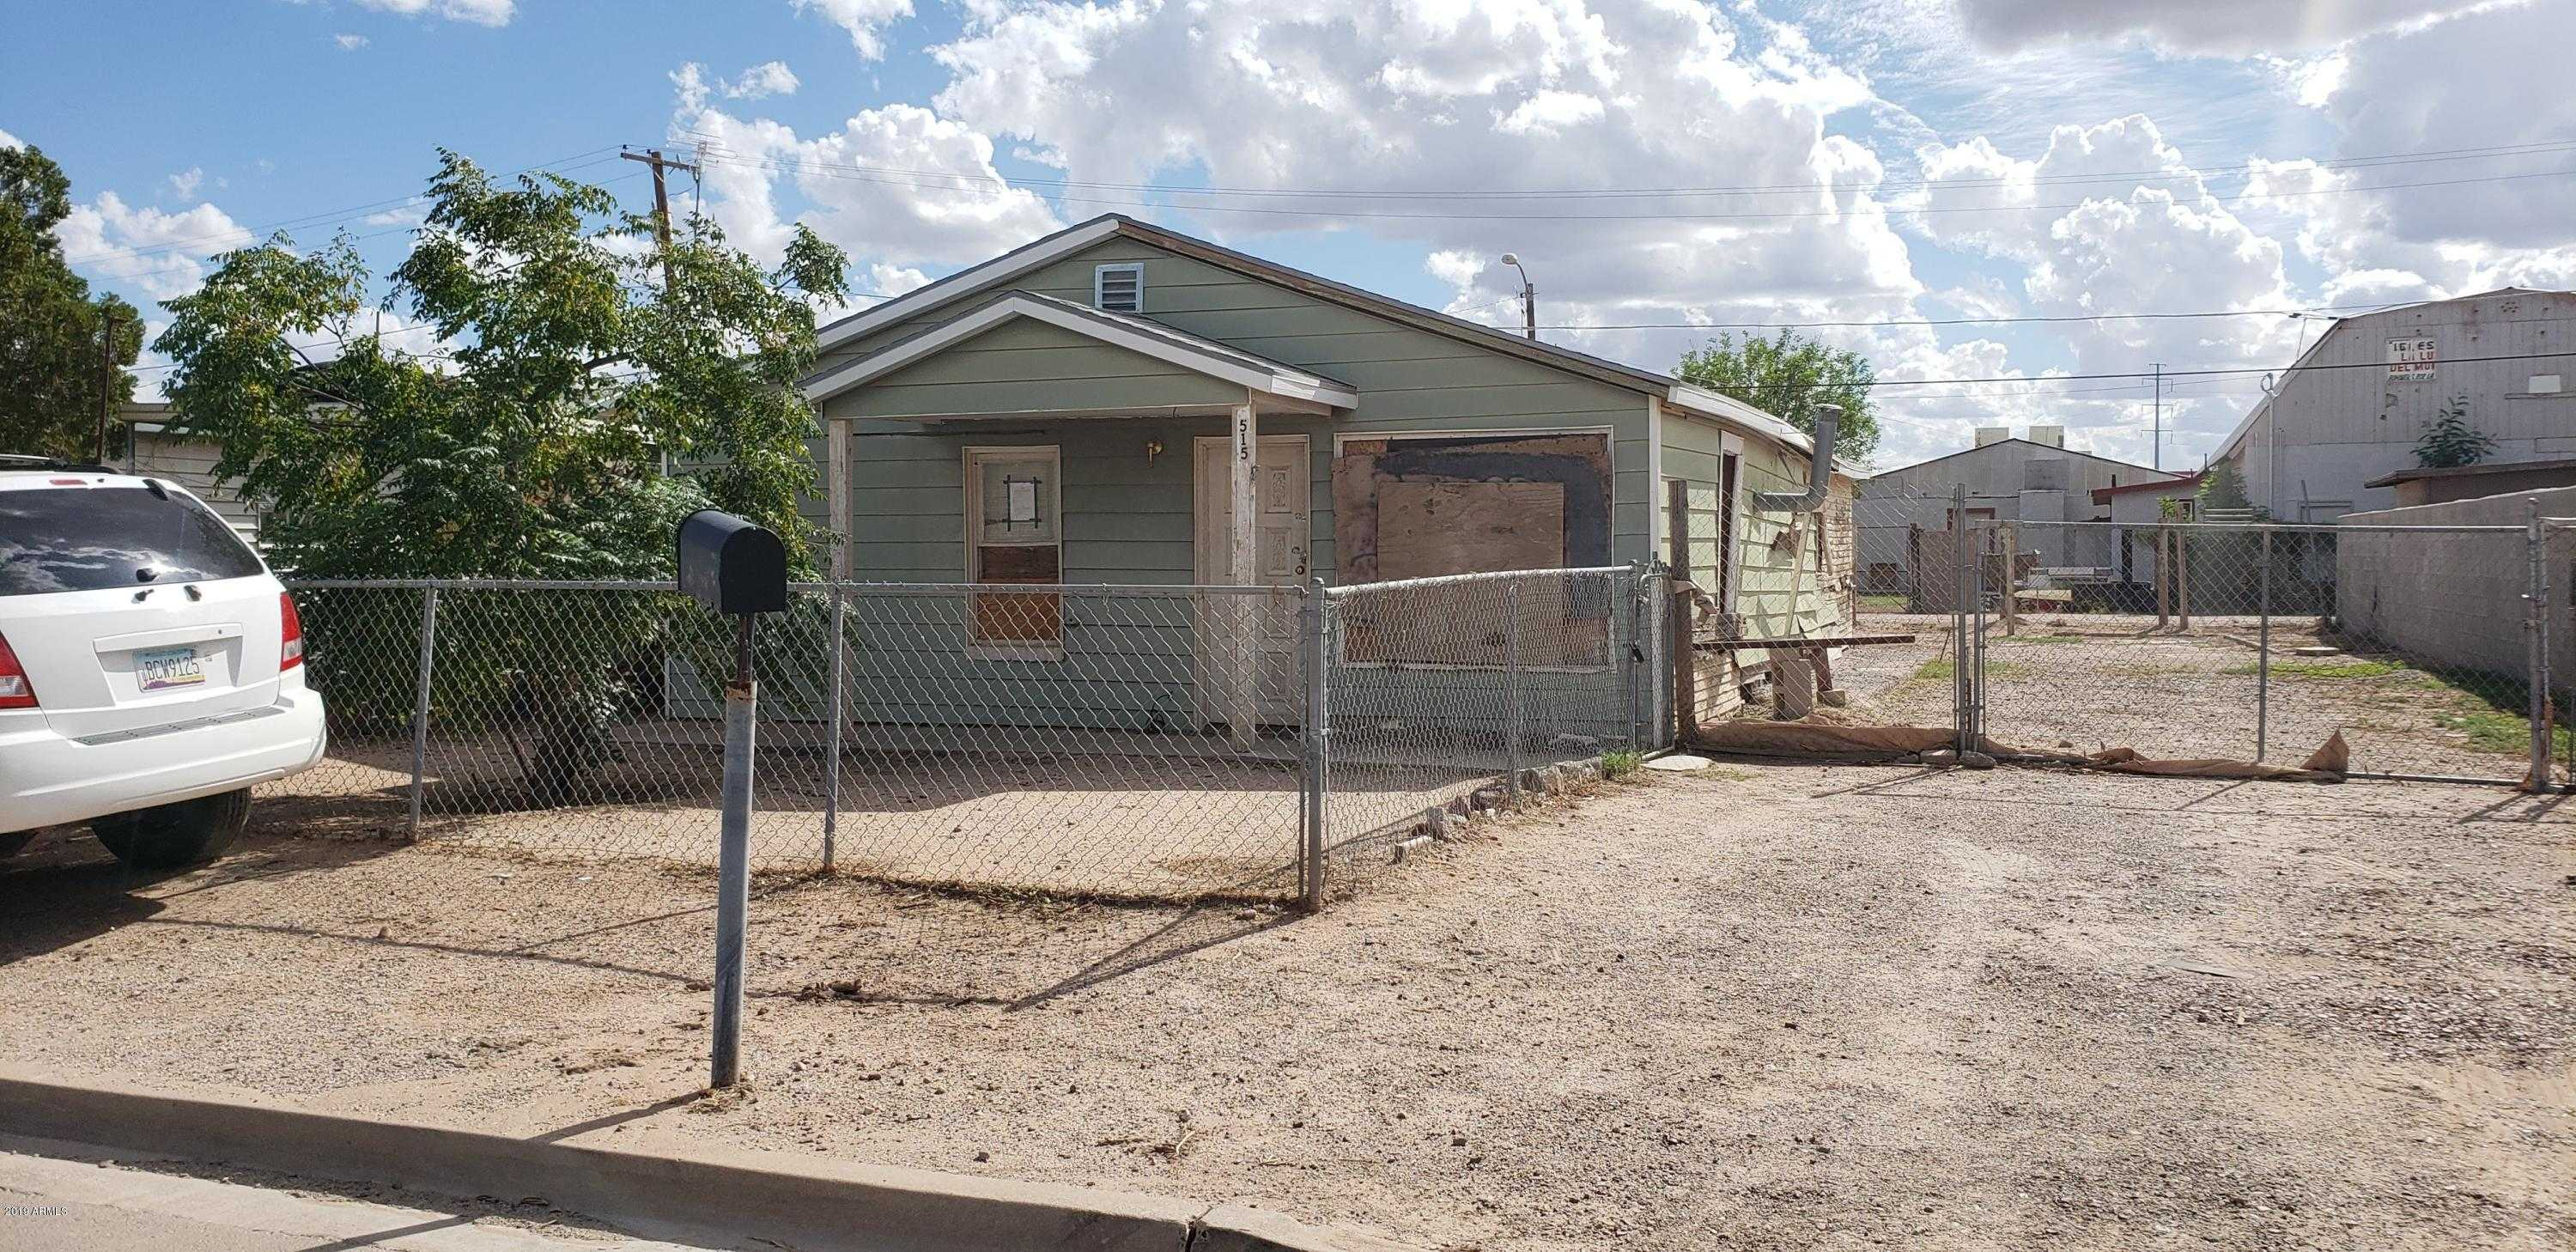 $8,500 - 2Br/1Ba - Home for Sale in 3rd Addition To Cotton City, Eloy